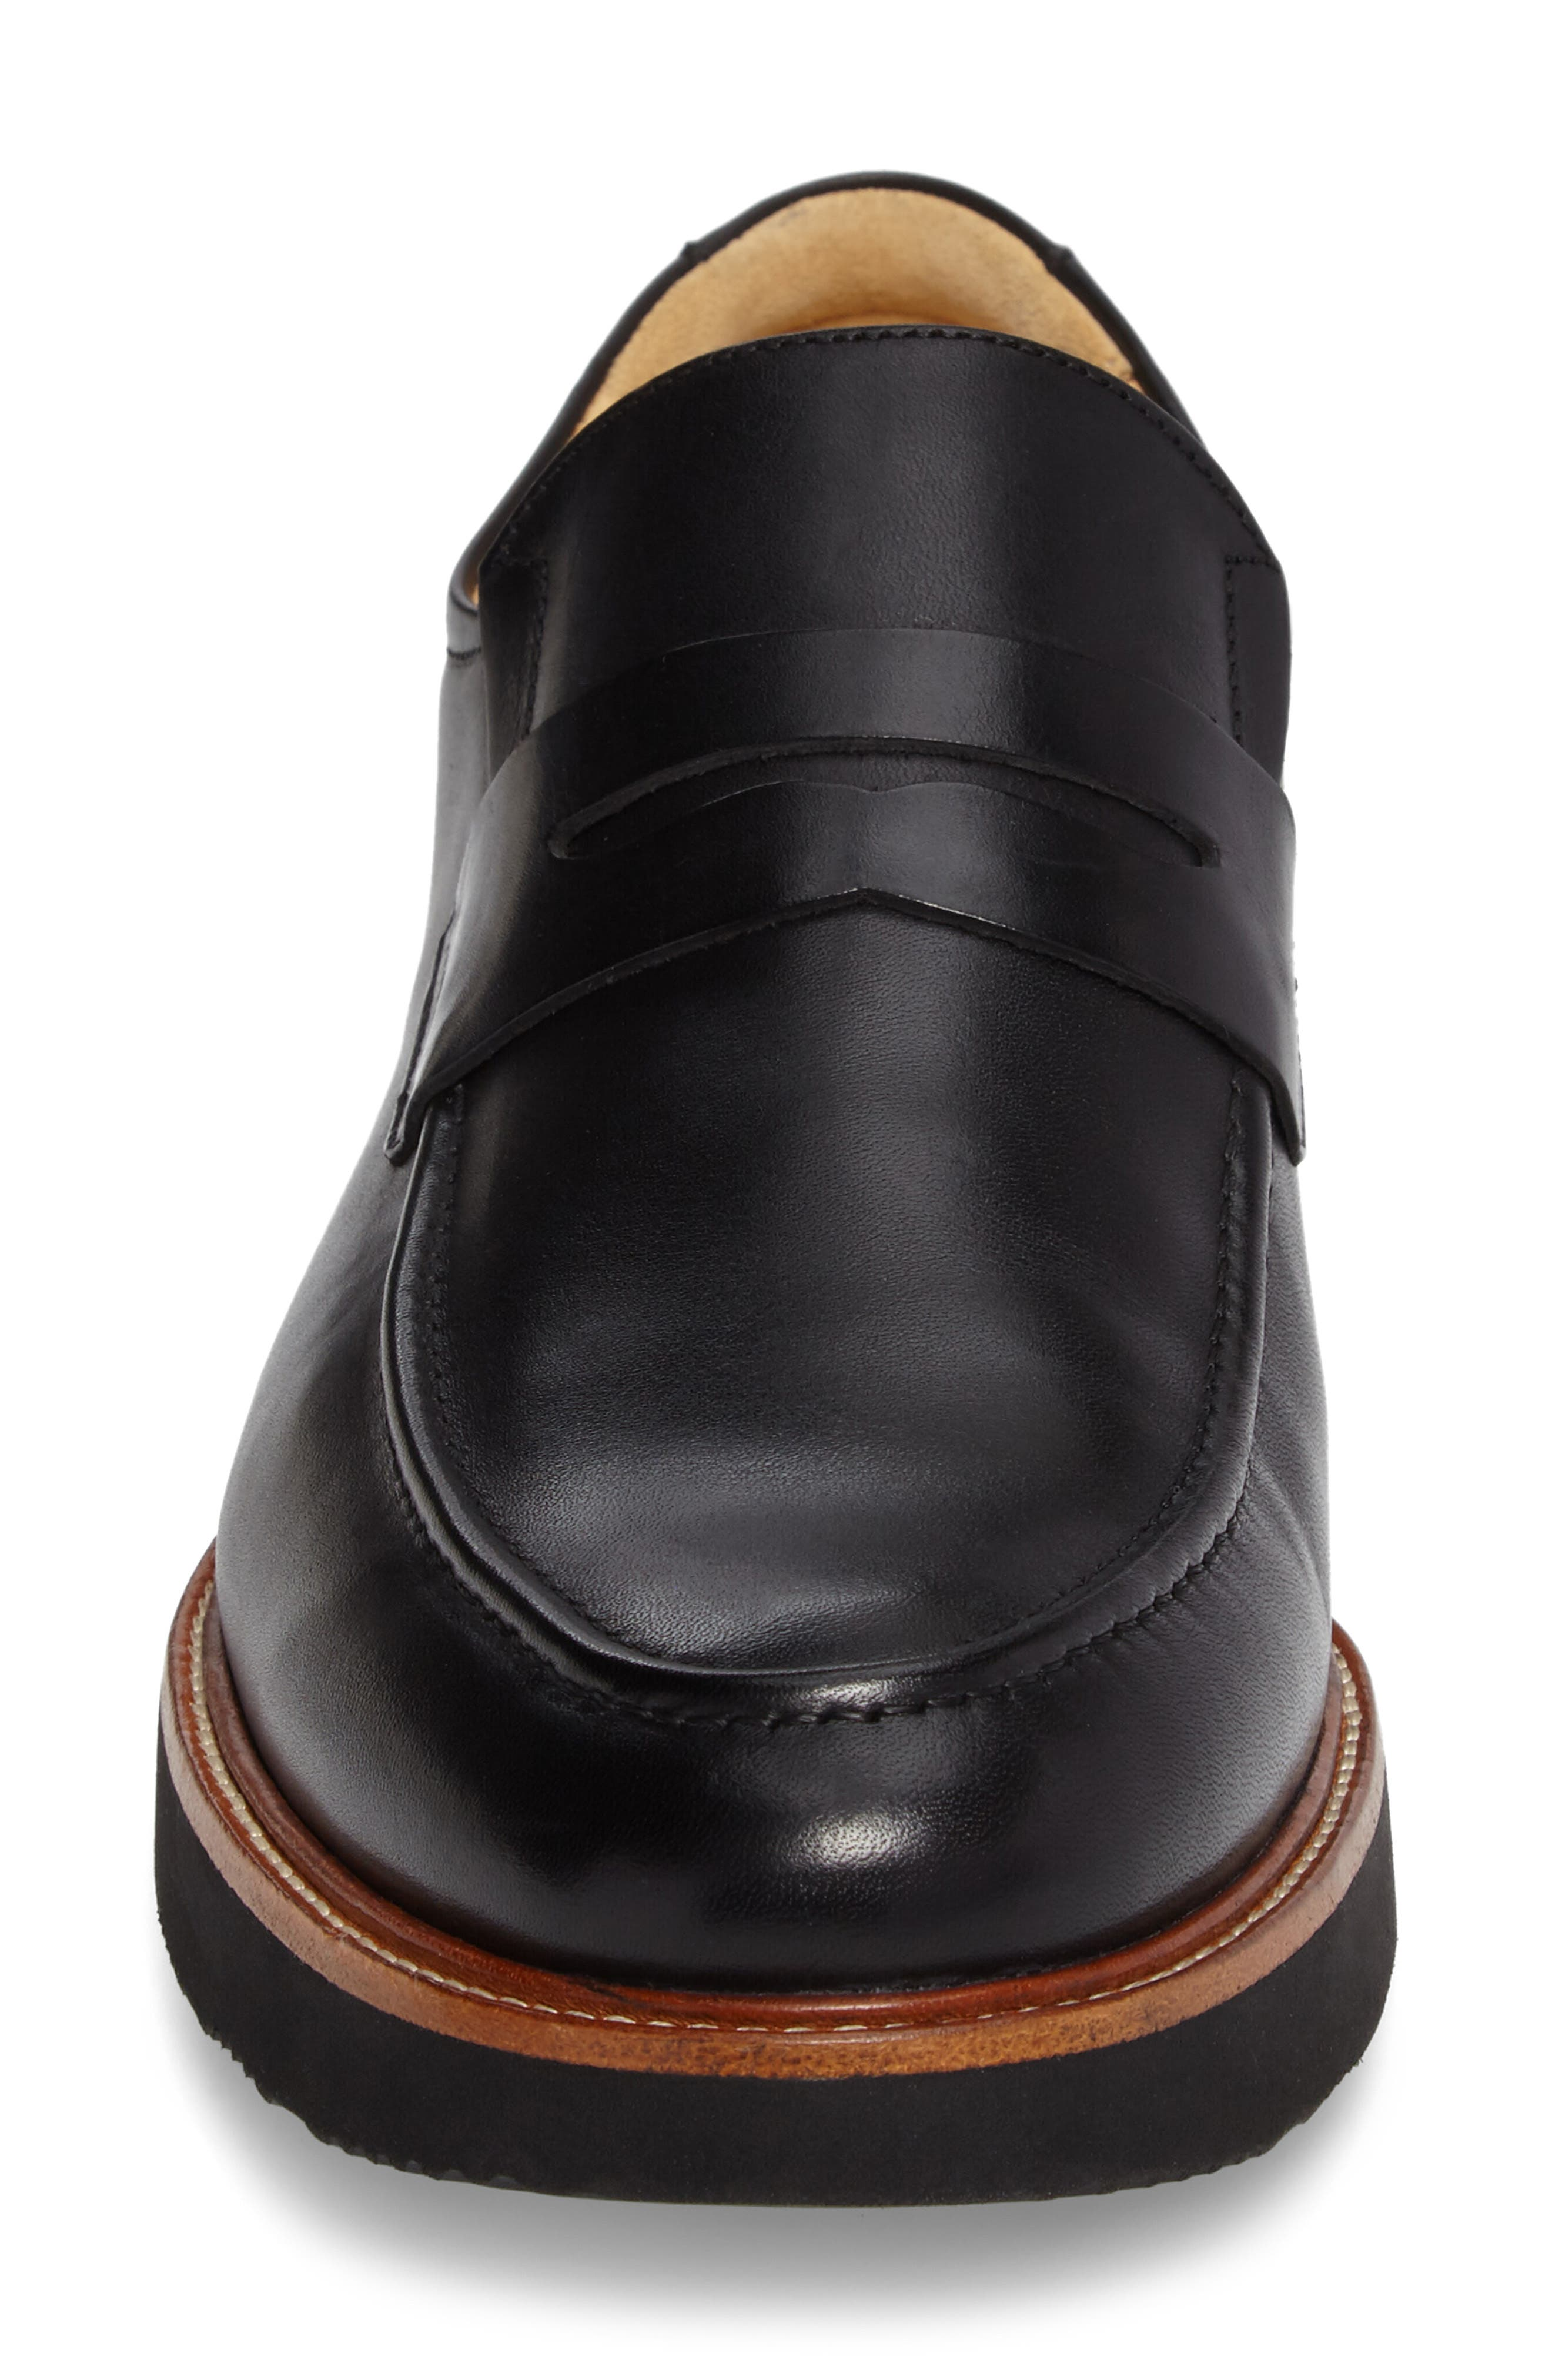 Ivy Legend Penny Loafer,                             Alternate thumbnail 4, color,                             Black Full Grain